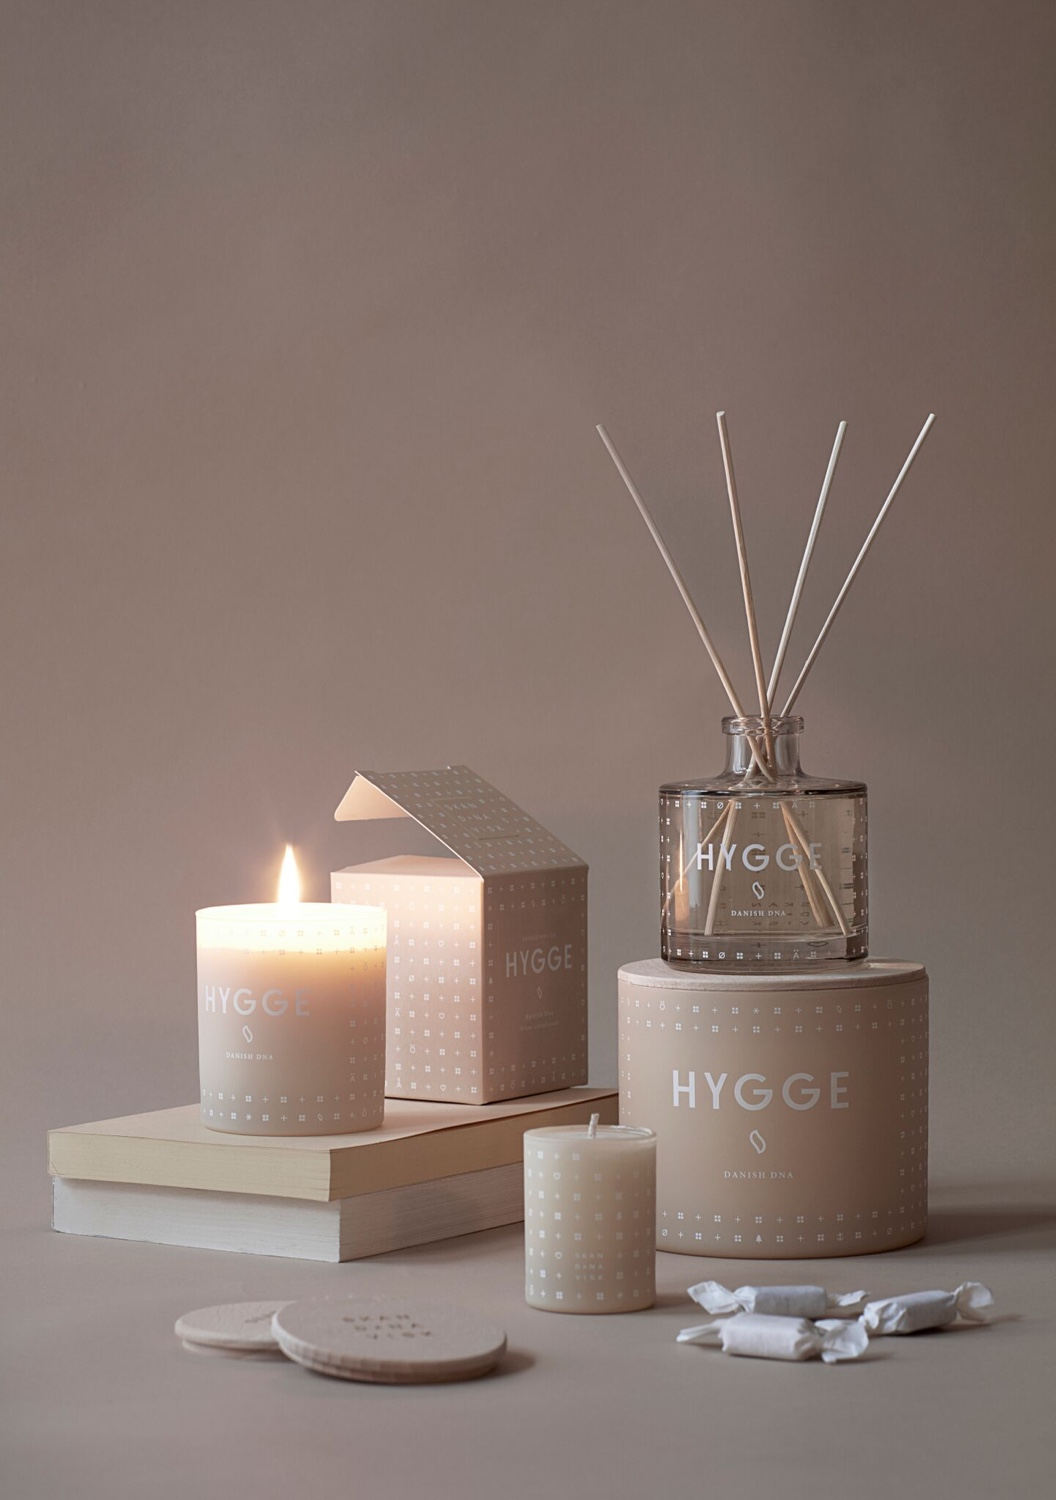 Hygge scented candles and diffuser. Image © 2016 SKANDINAVISK.